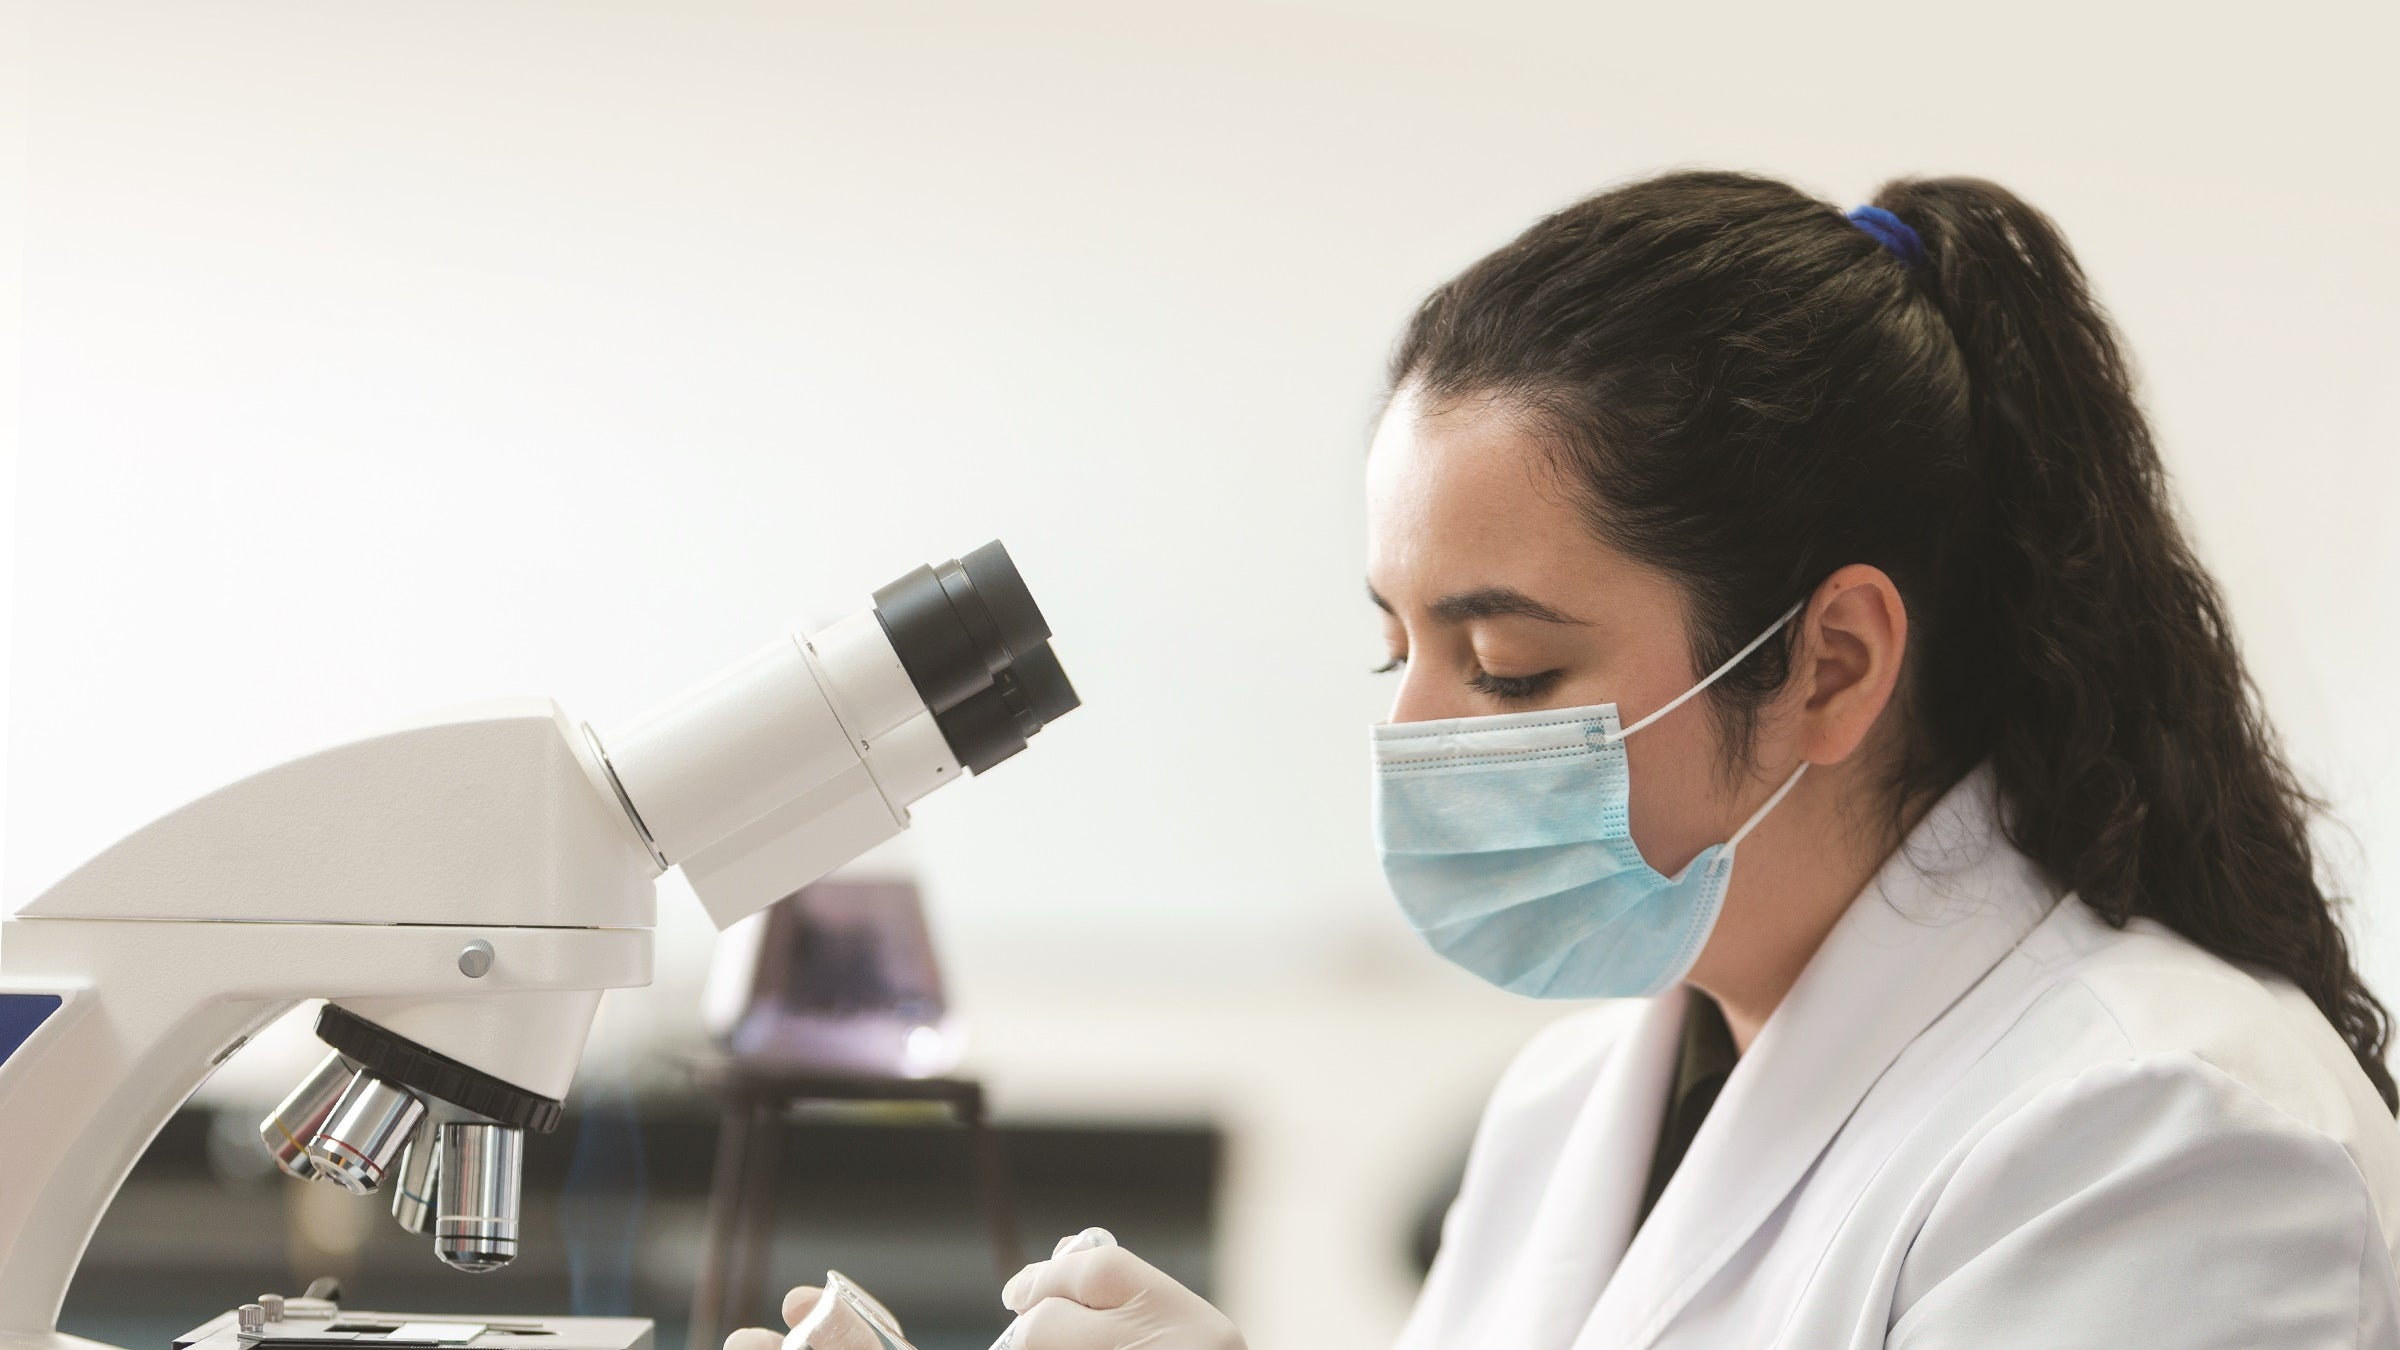 Technician looking at lab samples with a microscope